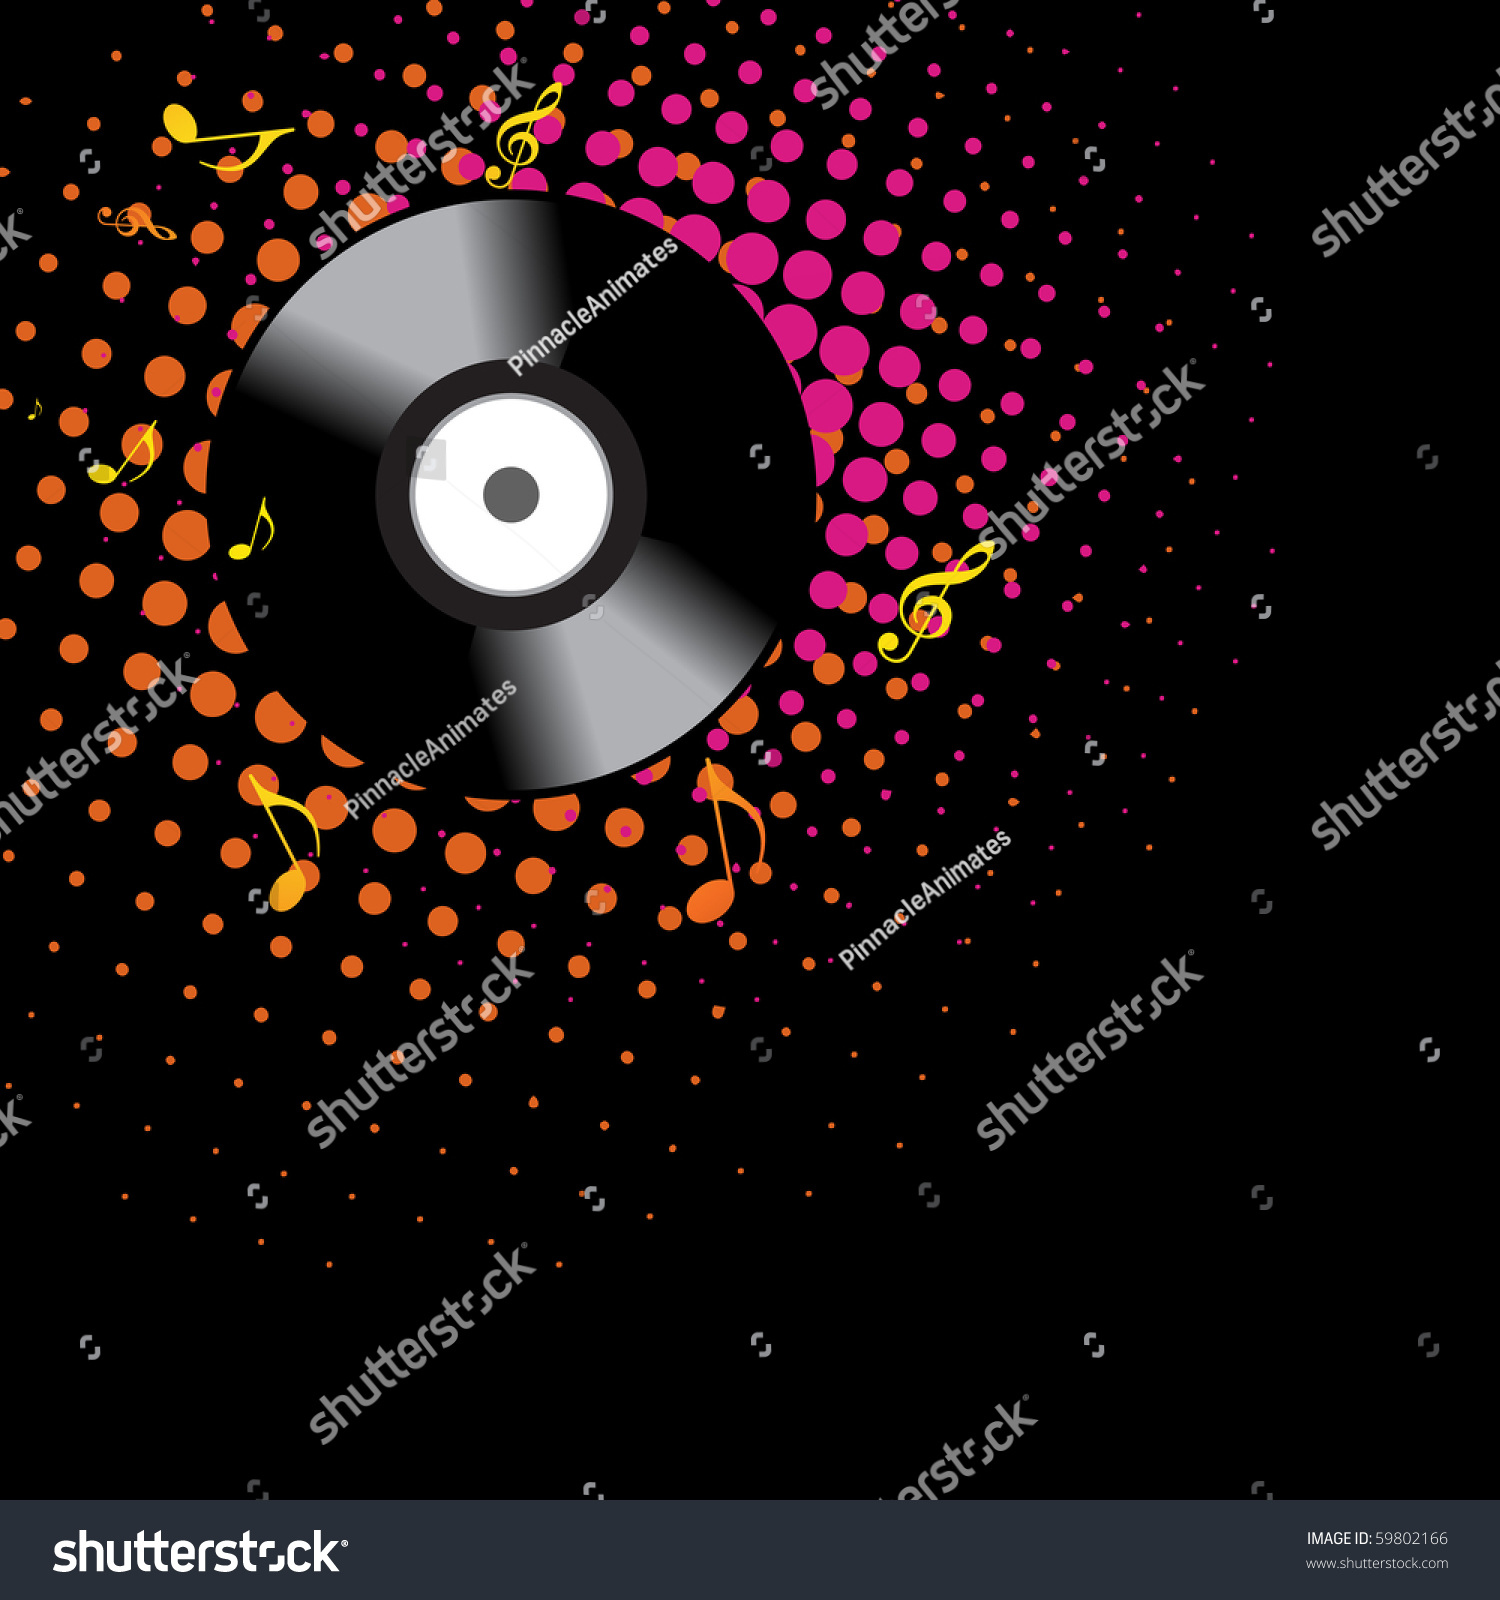 dark vinyl music background design stock vector